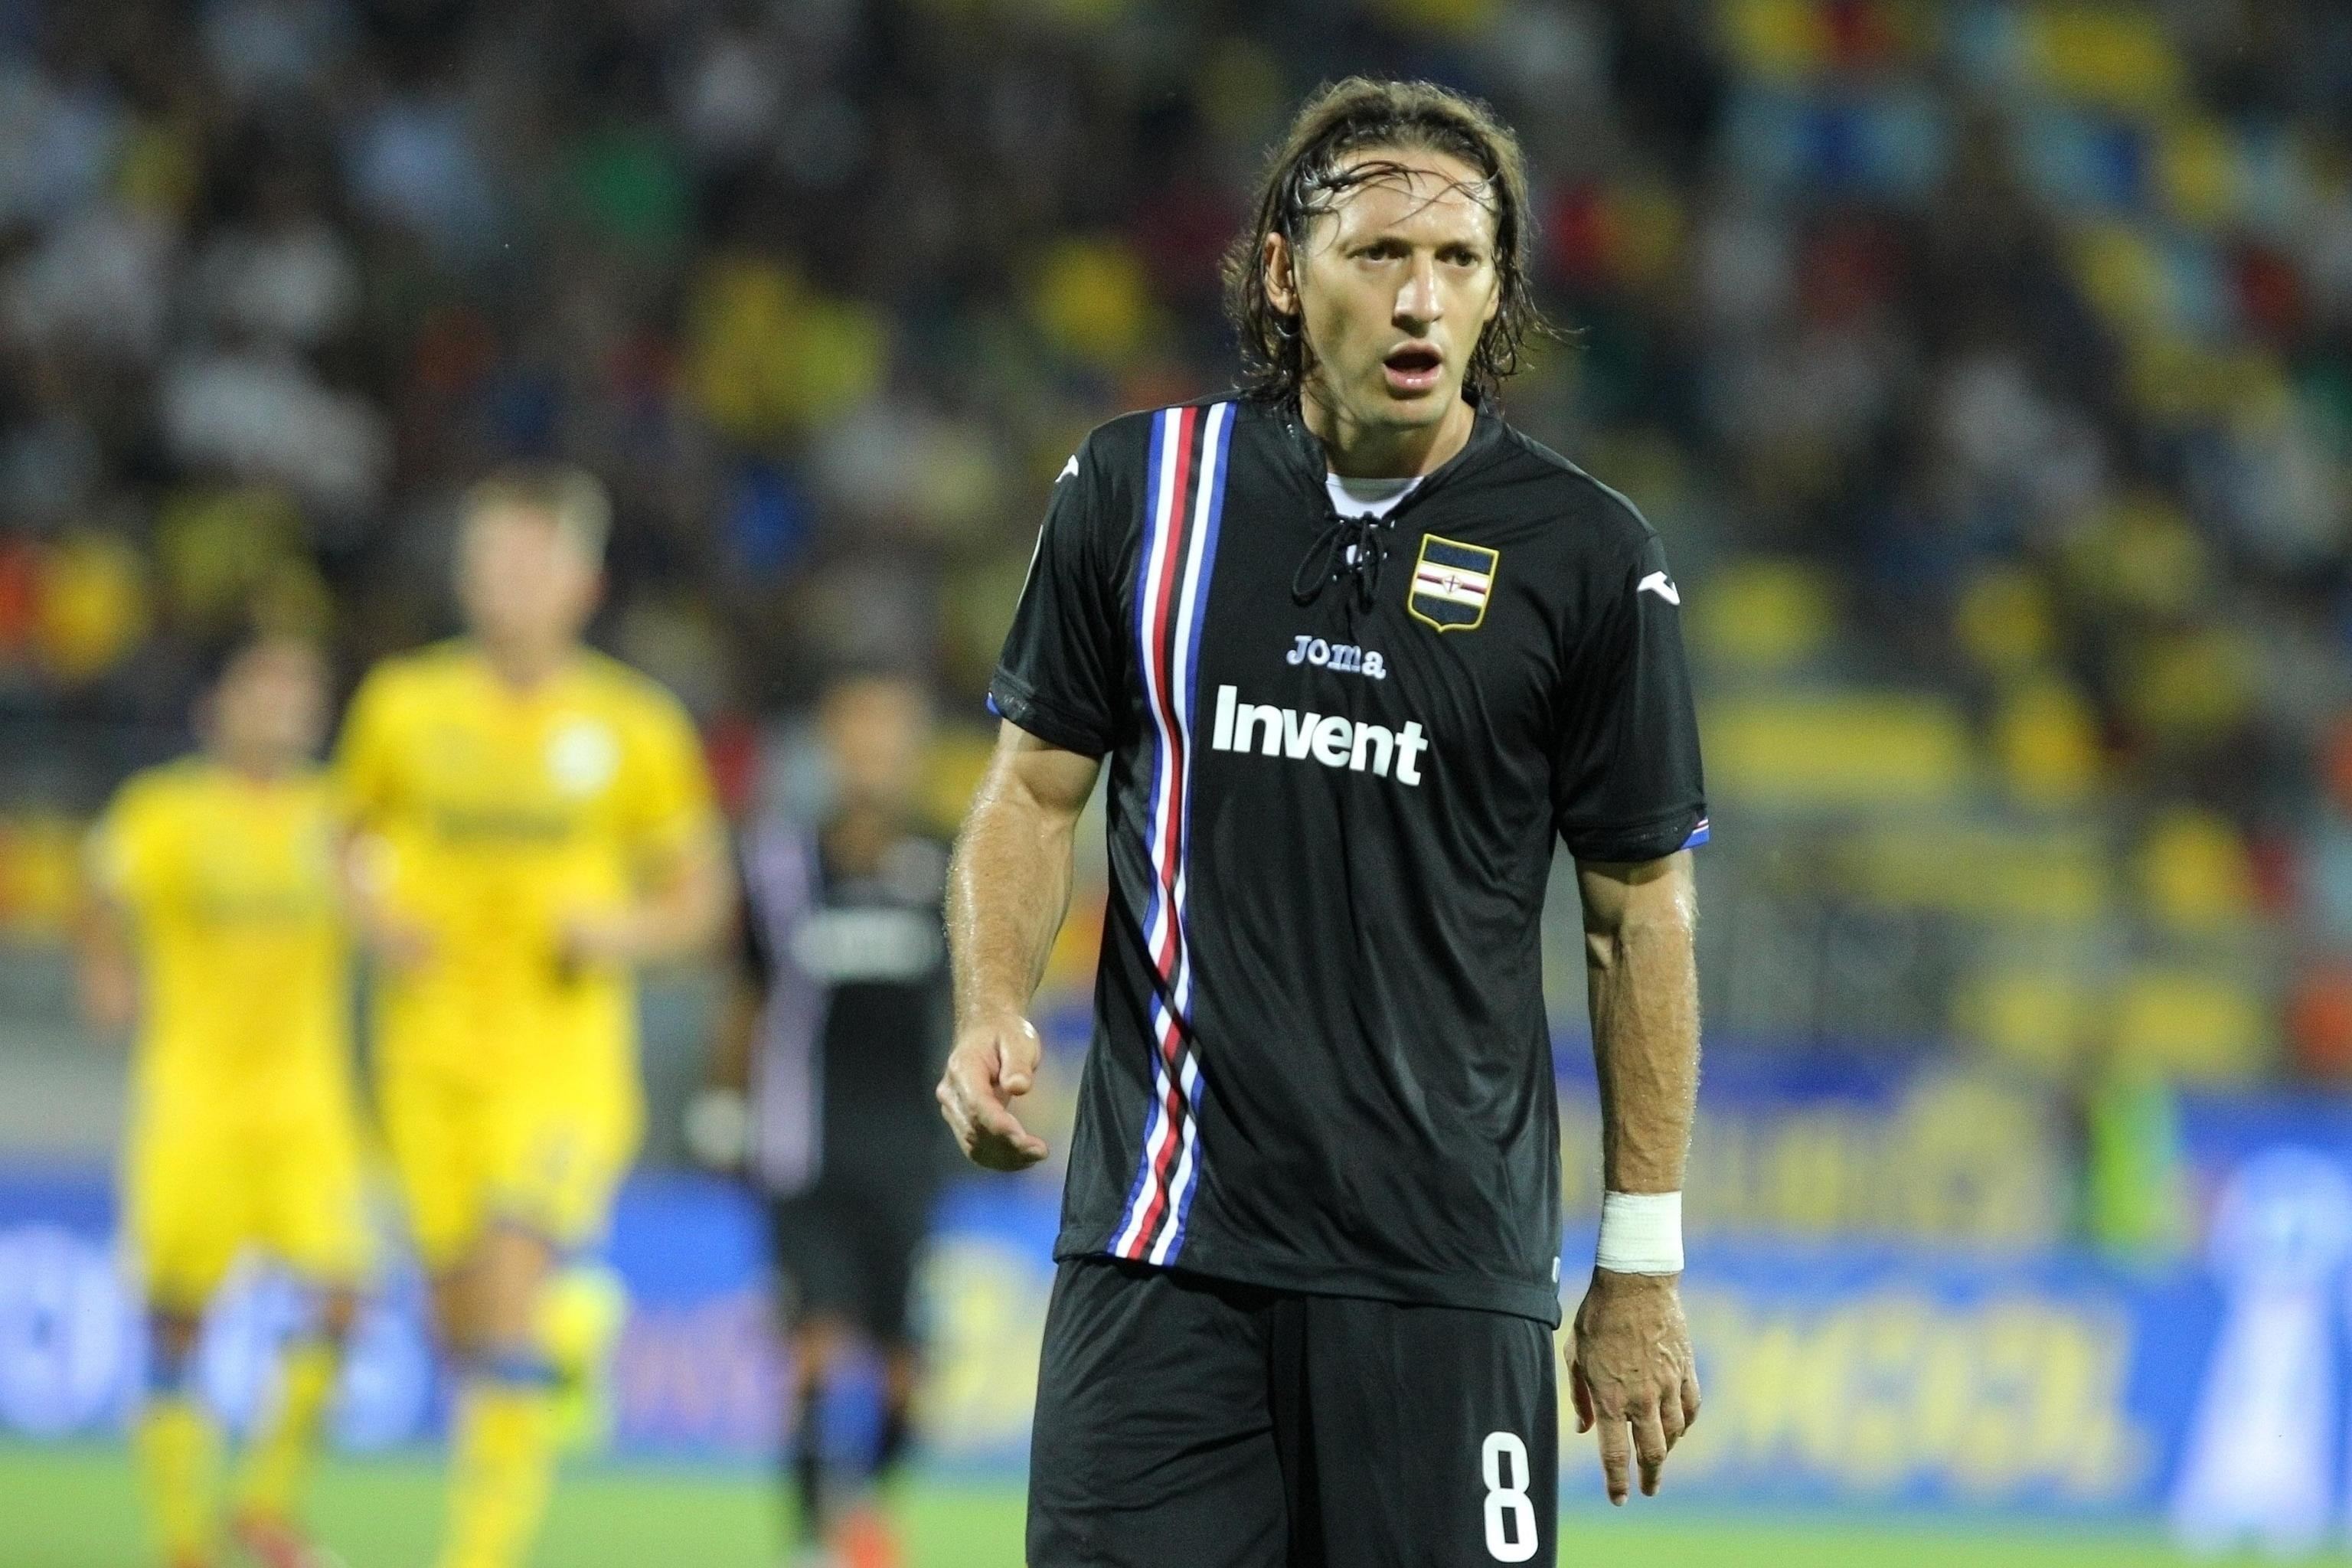 Edgar Barreto (Sampdoria)